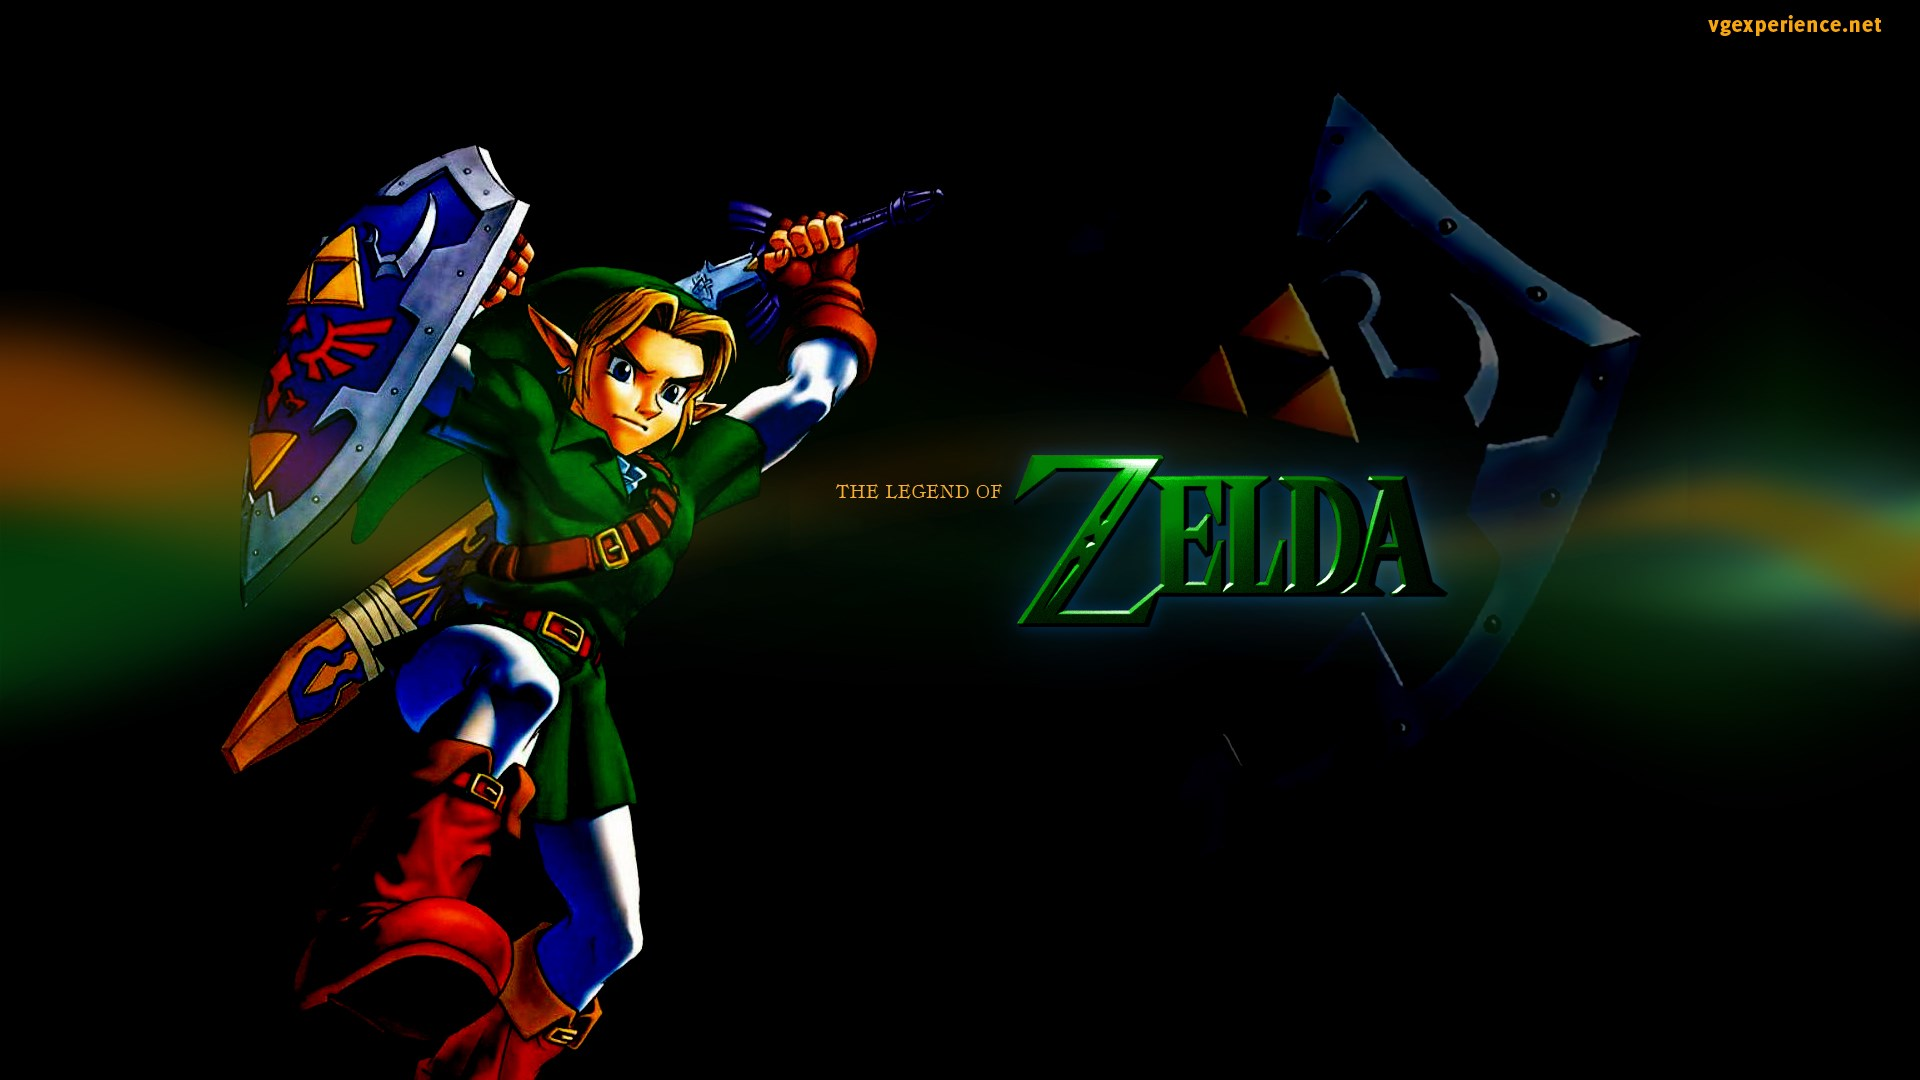 1920x1080-hd-the-legend-of-zelda-ocarina-of-time-wallpaper-wp380833